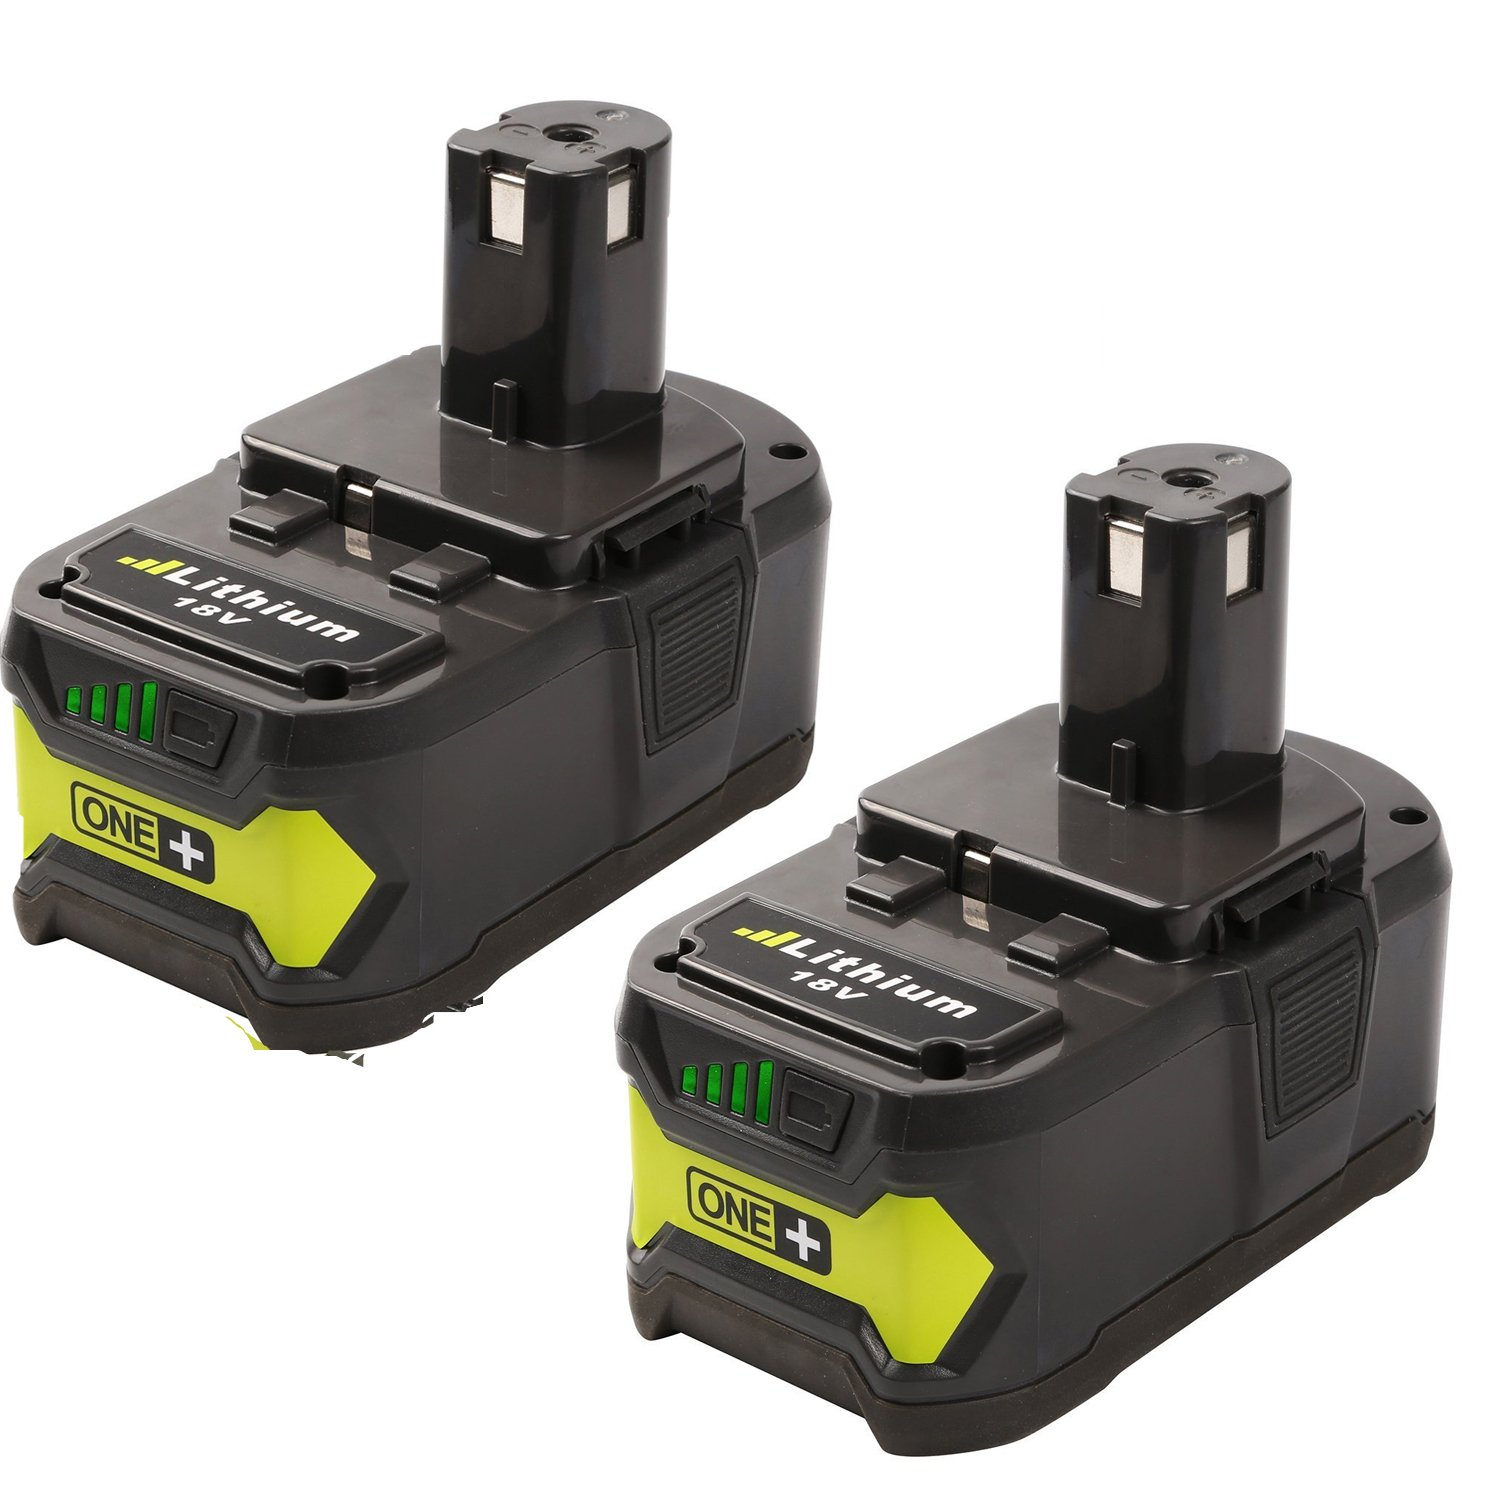 FUZADEL 2 Pack 18 volt Replacement Battery for Ryobi P122 P109 P107 One Plus 18v lithium Battery P108 P102